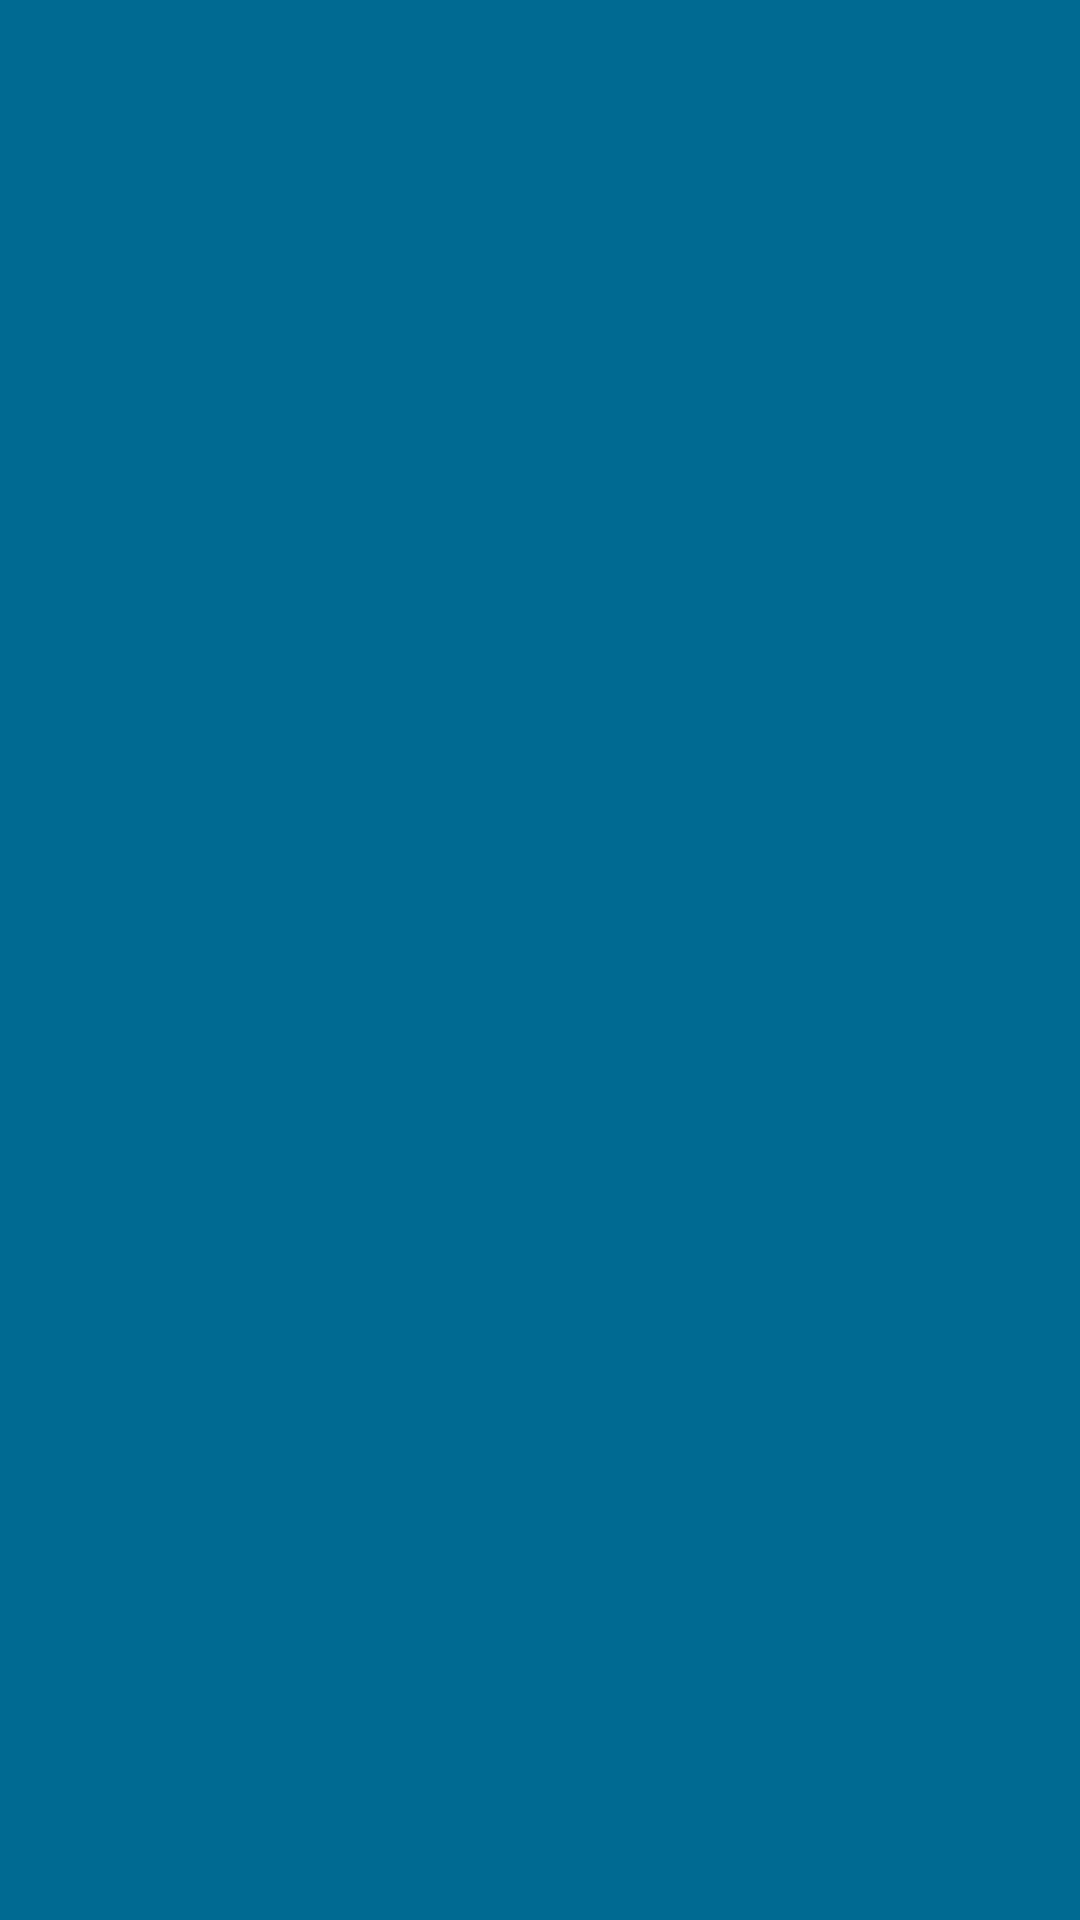 1080x1920 Sea Blue Solid Color Background